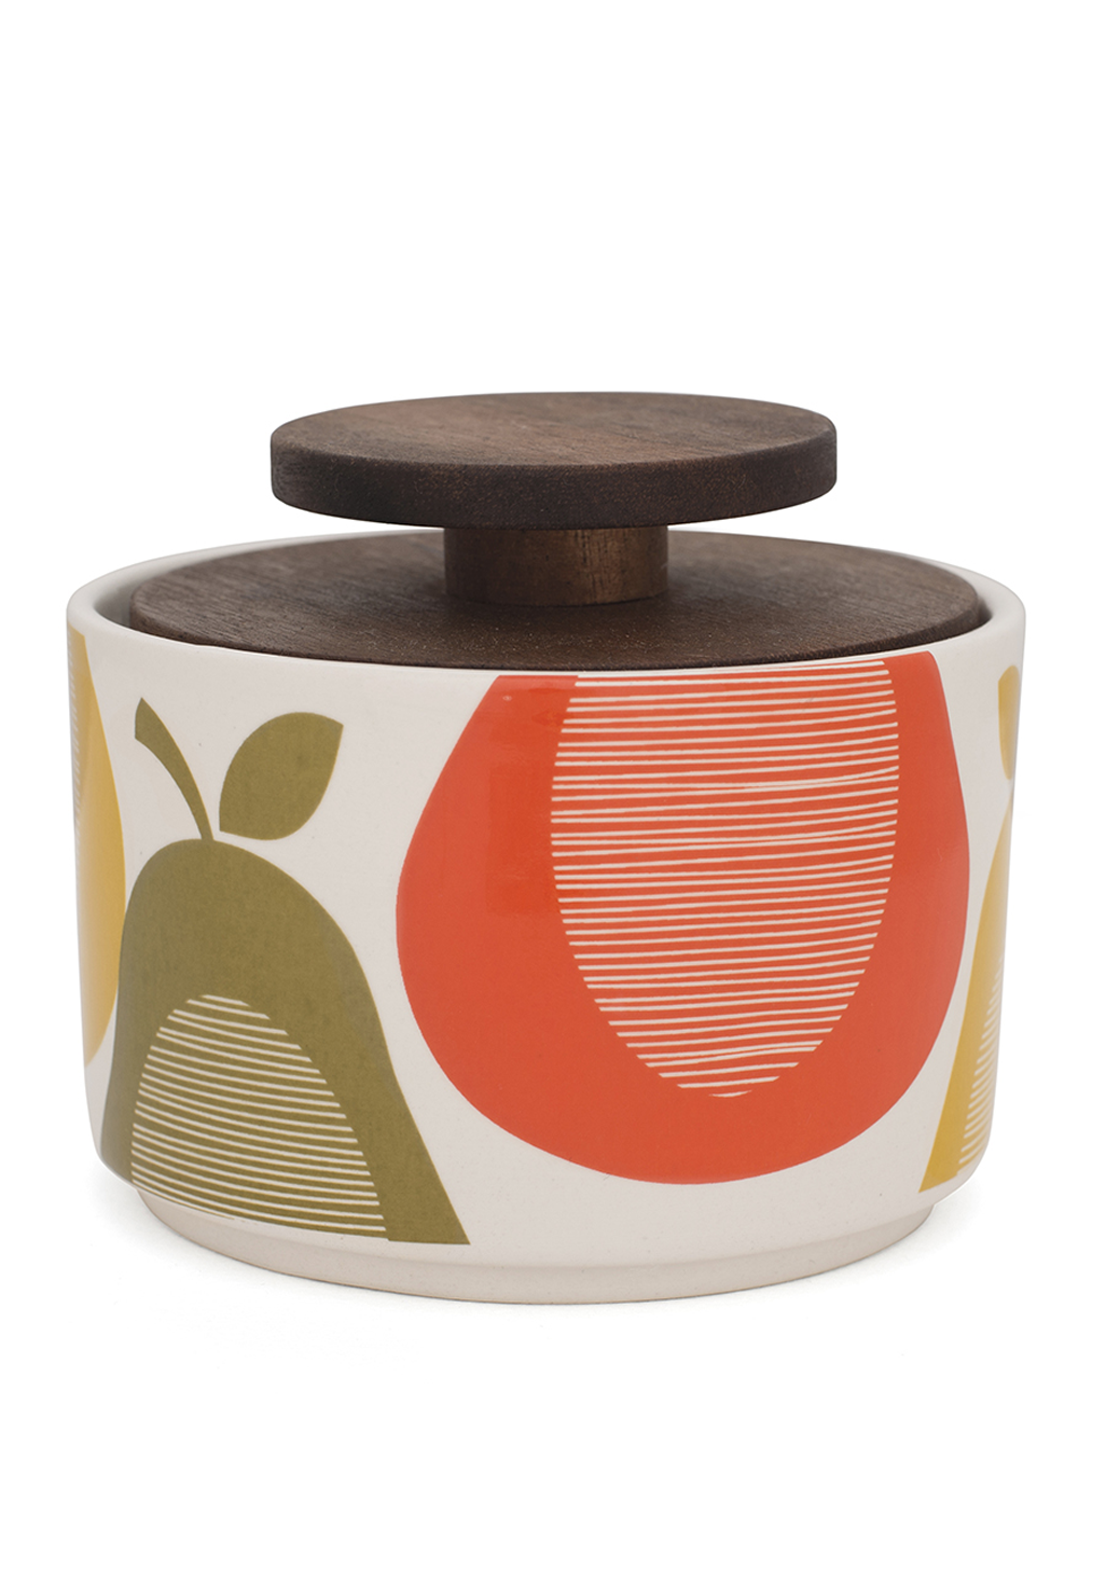 Orla Kiely Pear Print Sugar Bowl, Cream Multi